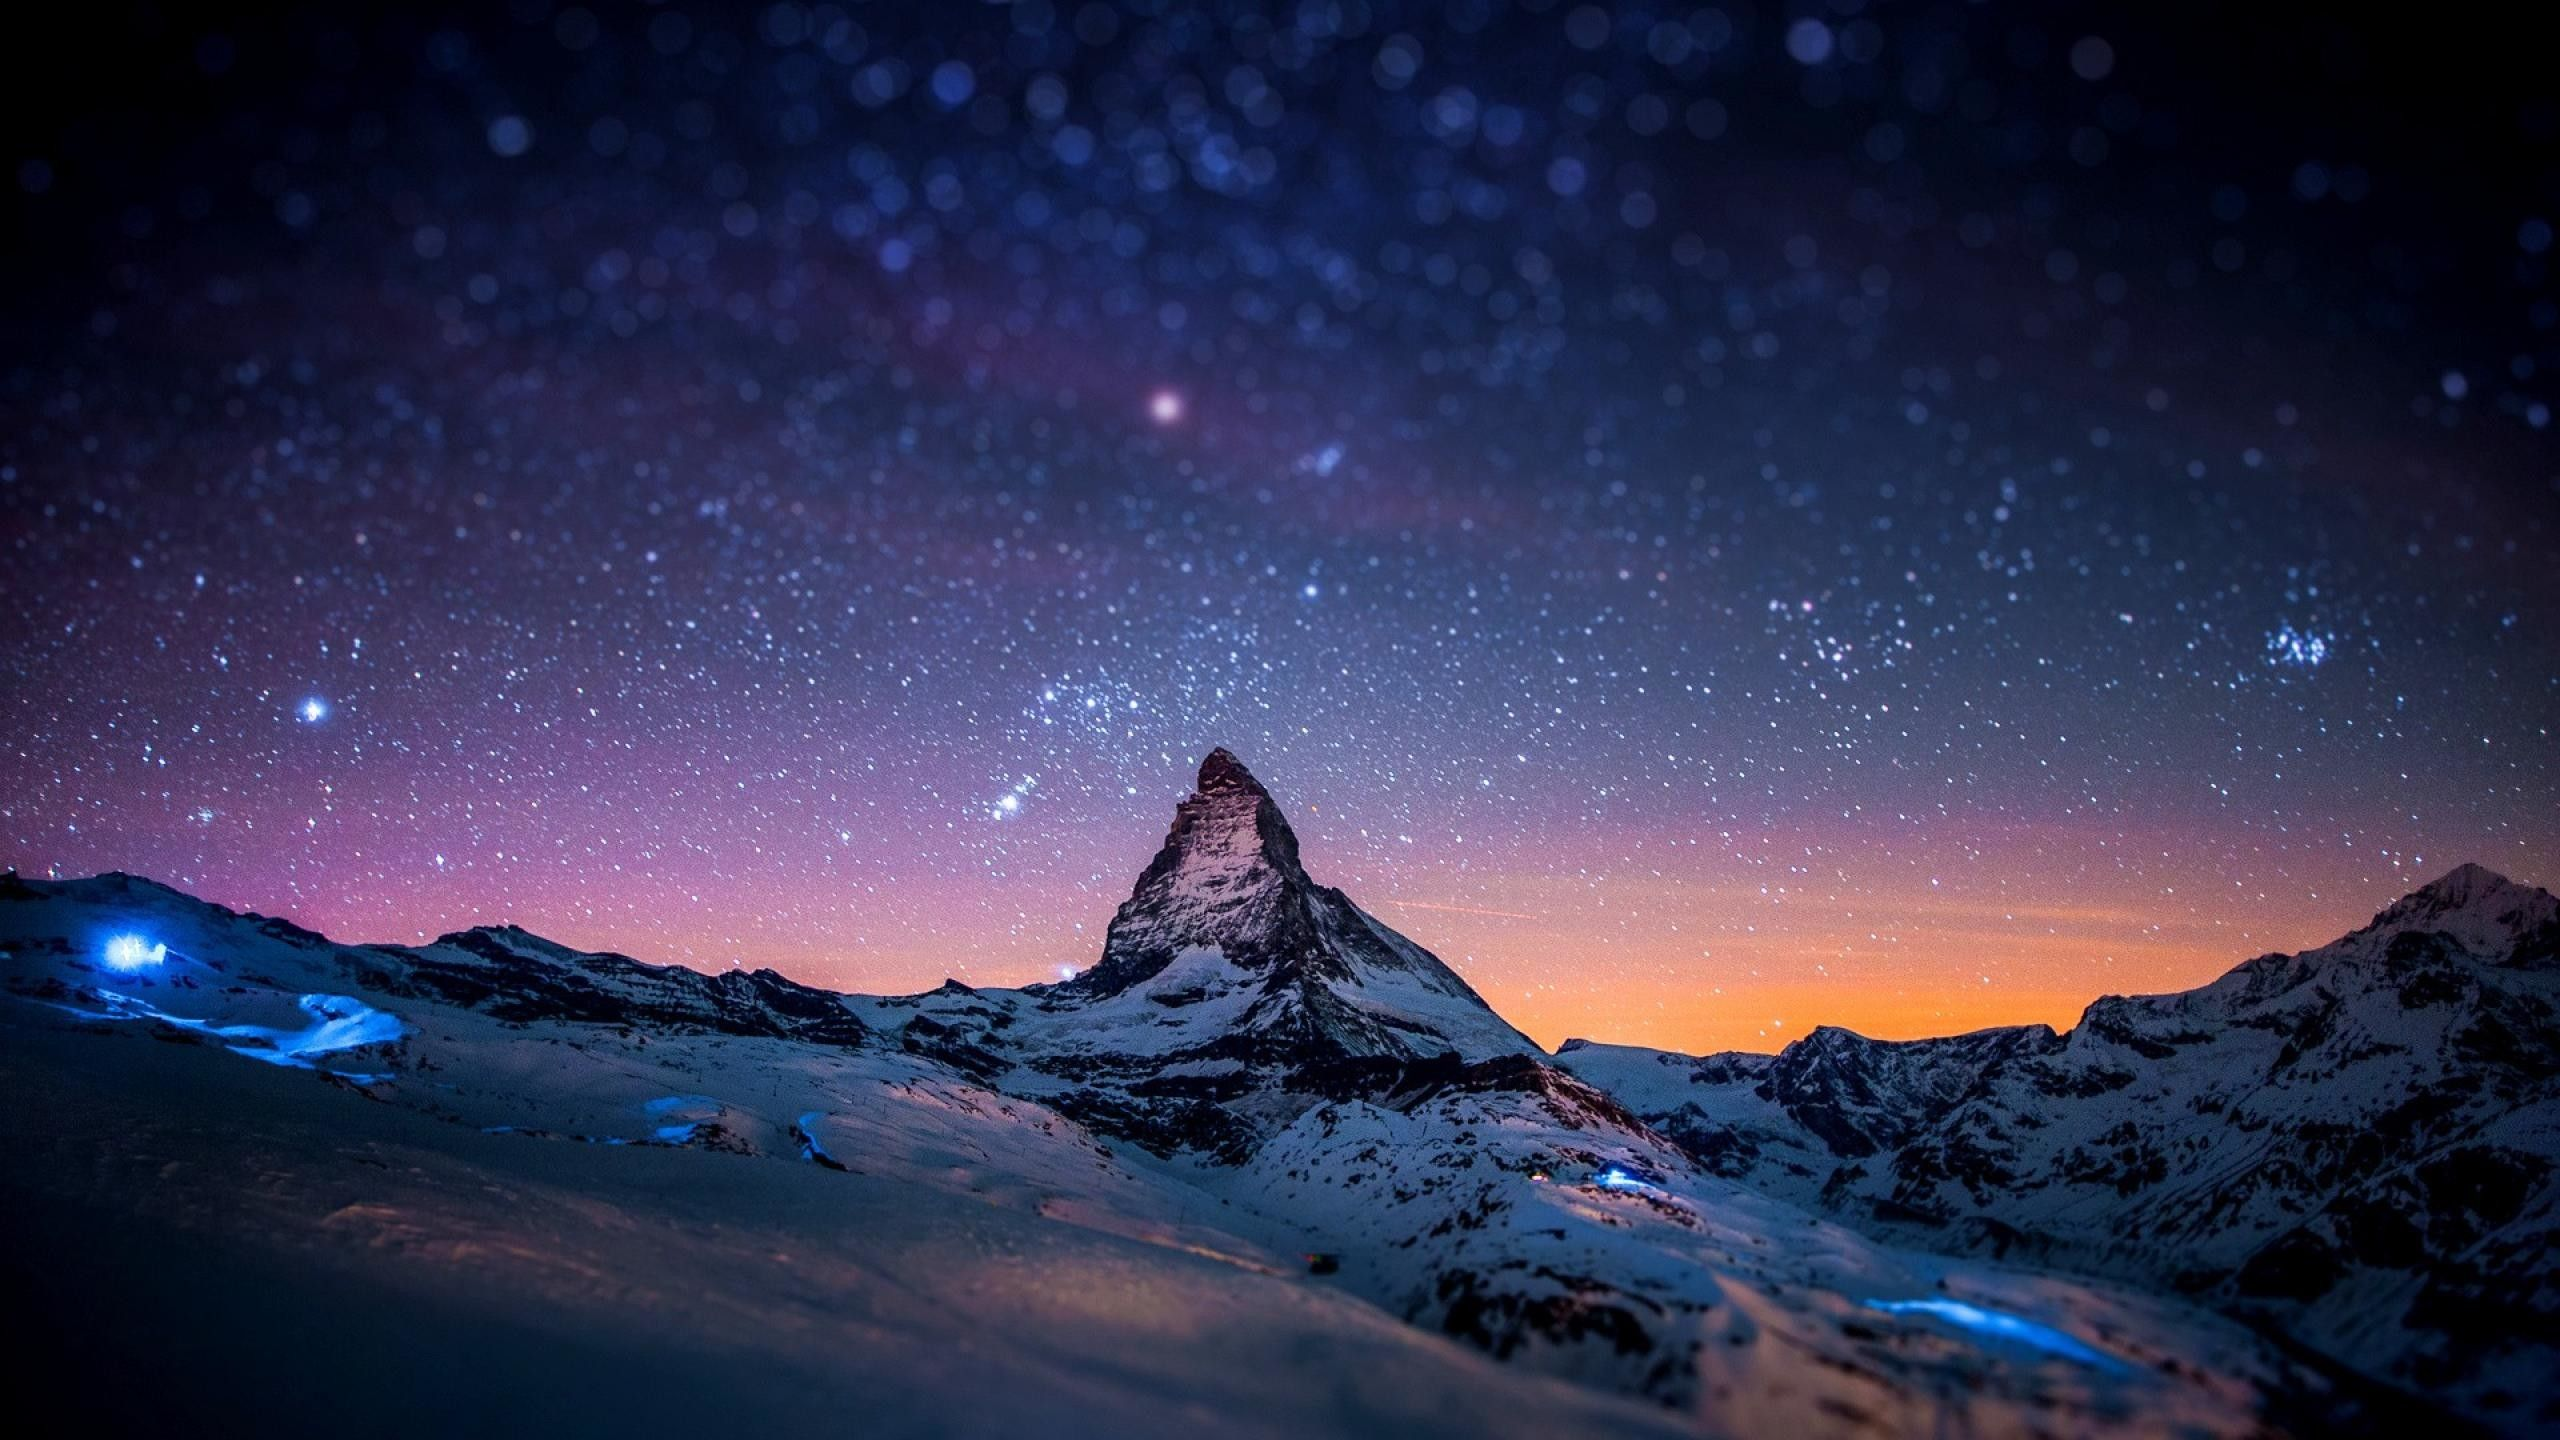 Night View Of Sky Full Of Stars Nature Wallpapers Download Beautiful Hd Wallpaper 1080p 2160p Uhd 4k Hd For Ios Devices Iphone Android